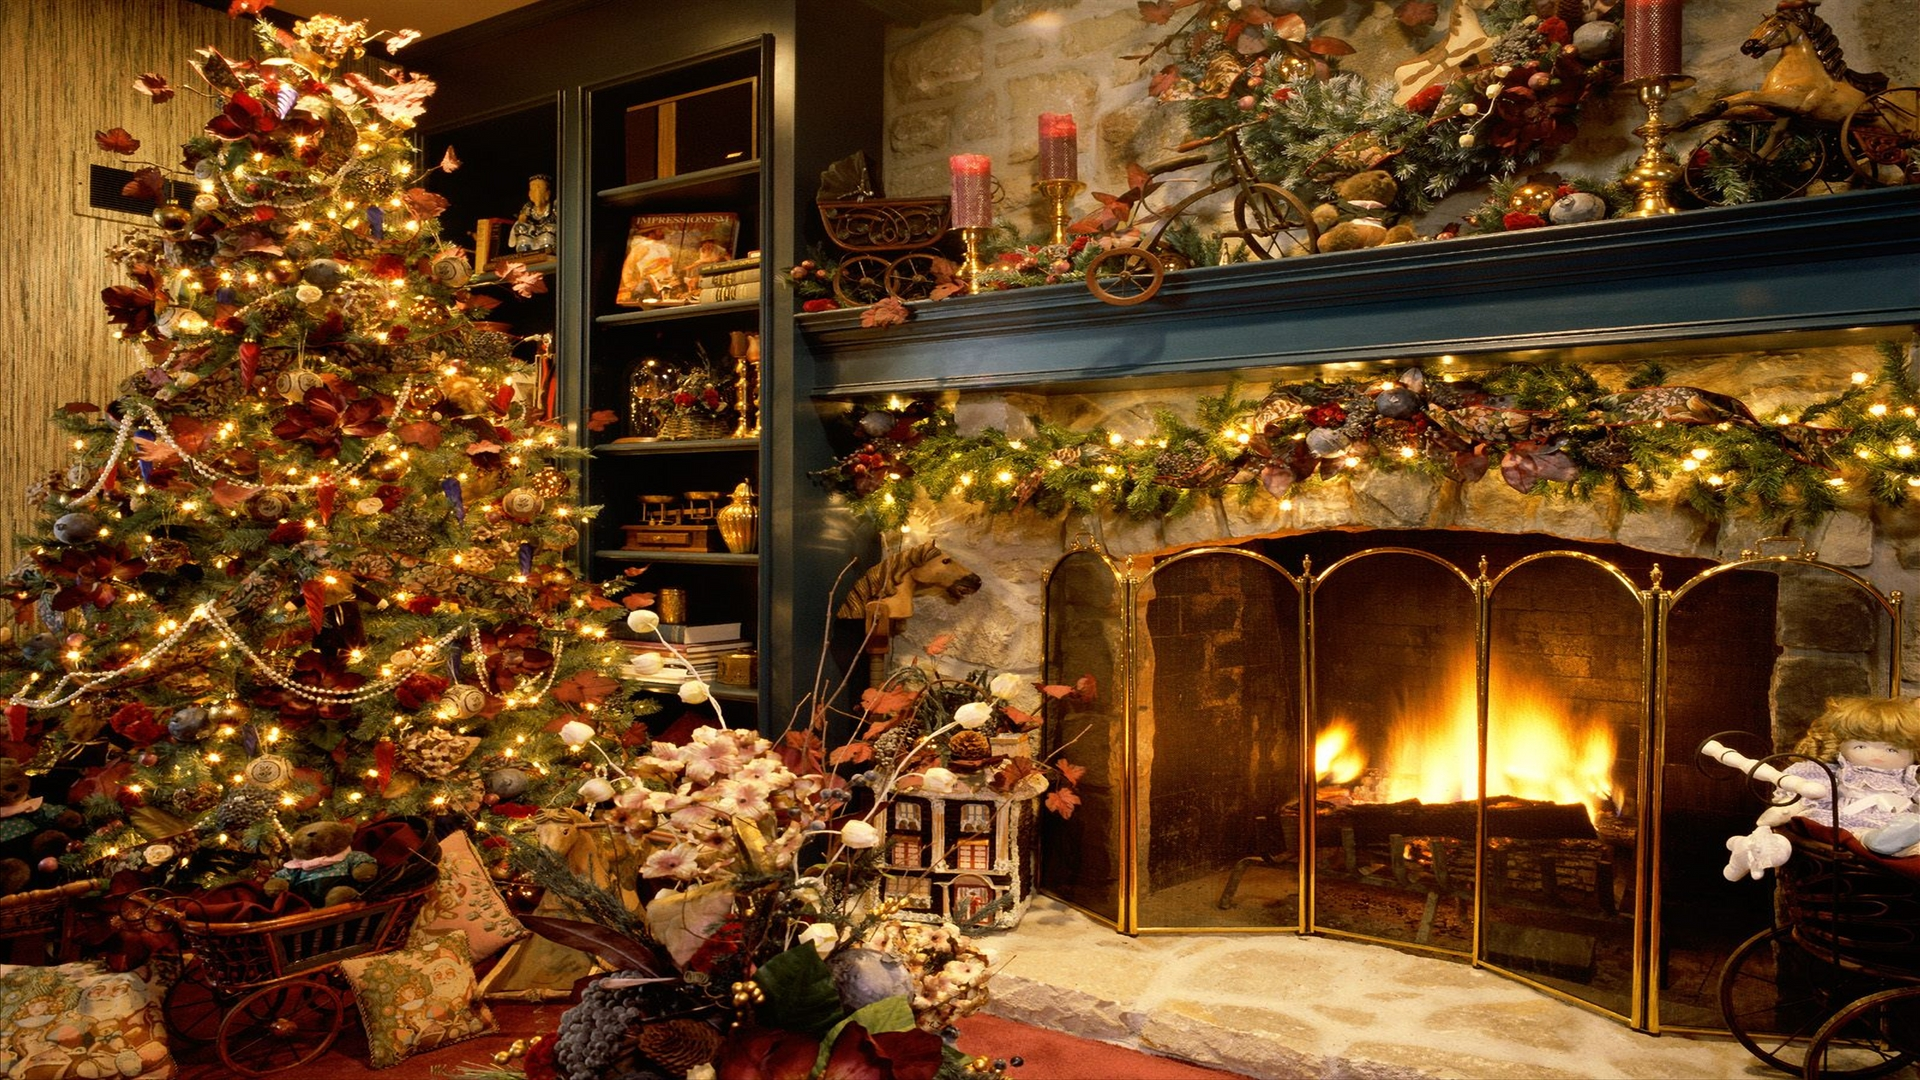 Awesome 40 Christmas 1920X1080 Pixels Full HD Wallpapers Collection 1920x1080